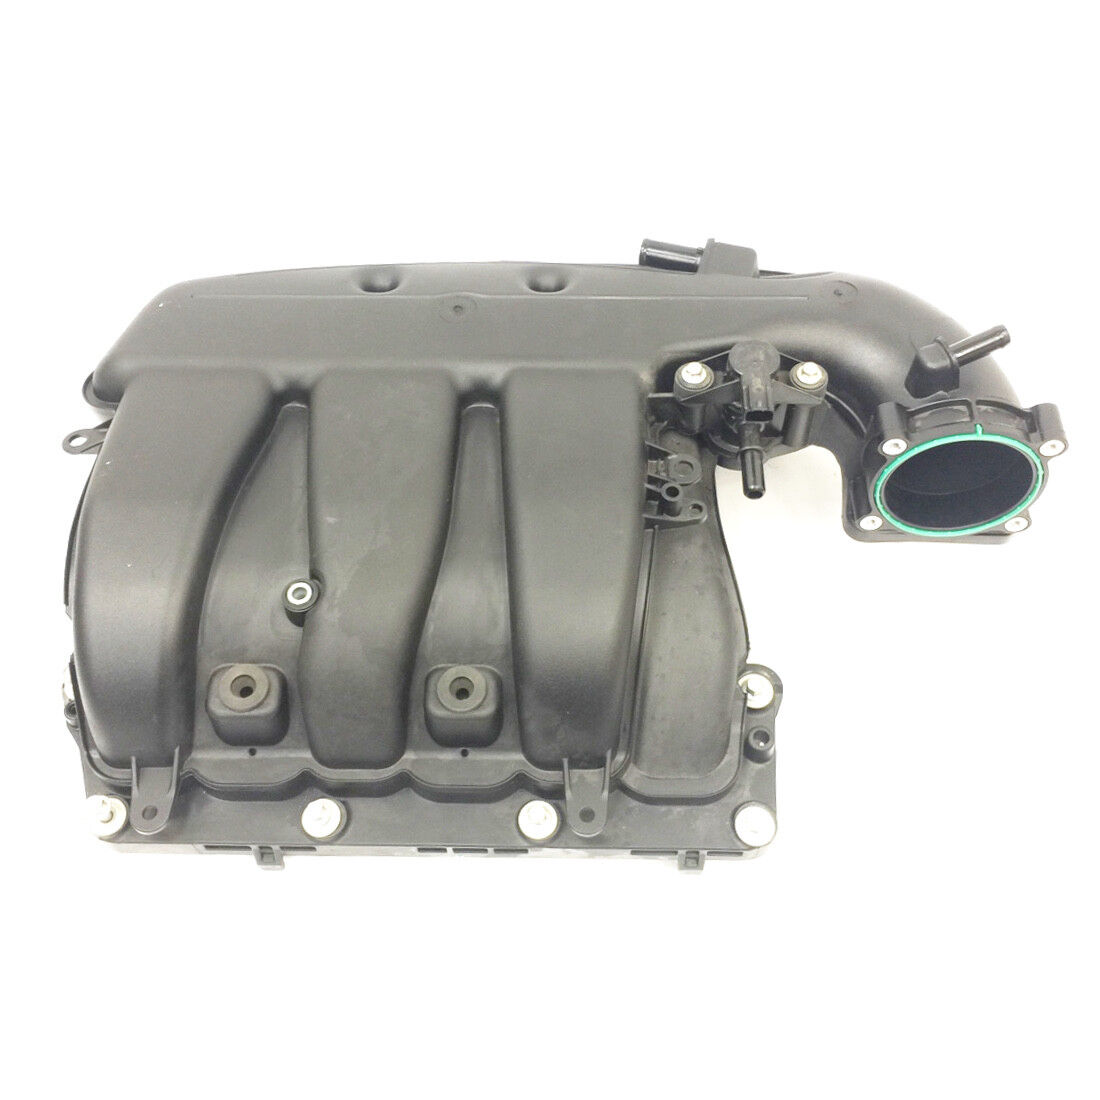 2000 Lincoln Continental For Sale: Used Lincoln Intake Manifolds For Sale